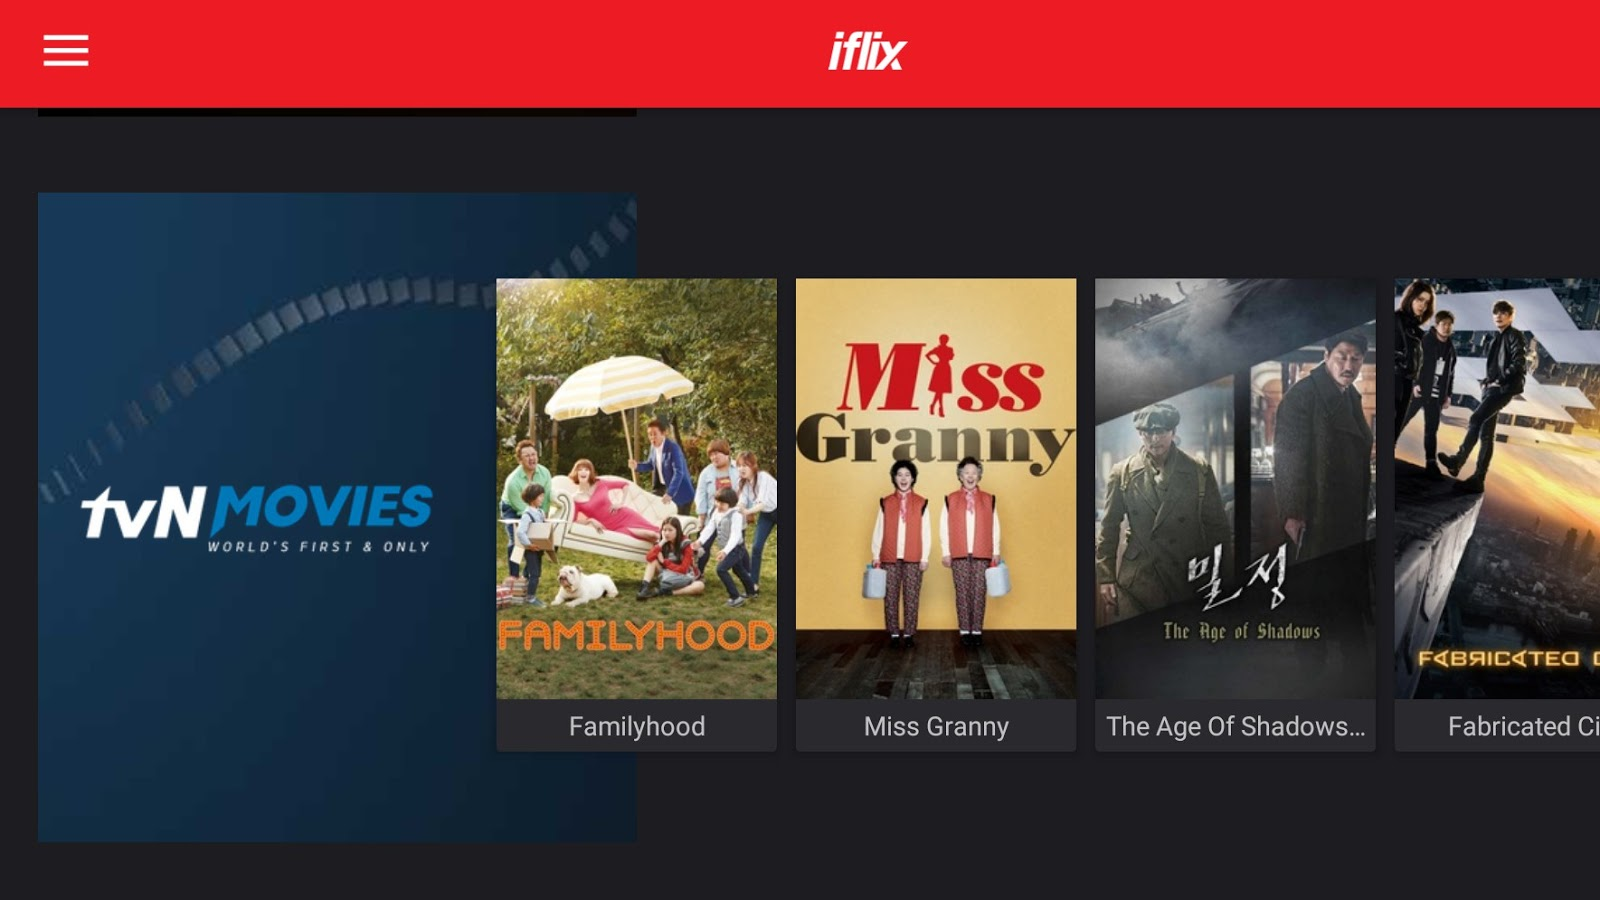 IFLIX adds new channels like tvN Movies and Star Cinema